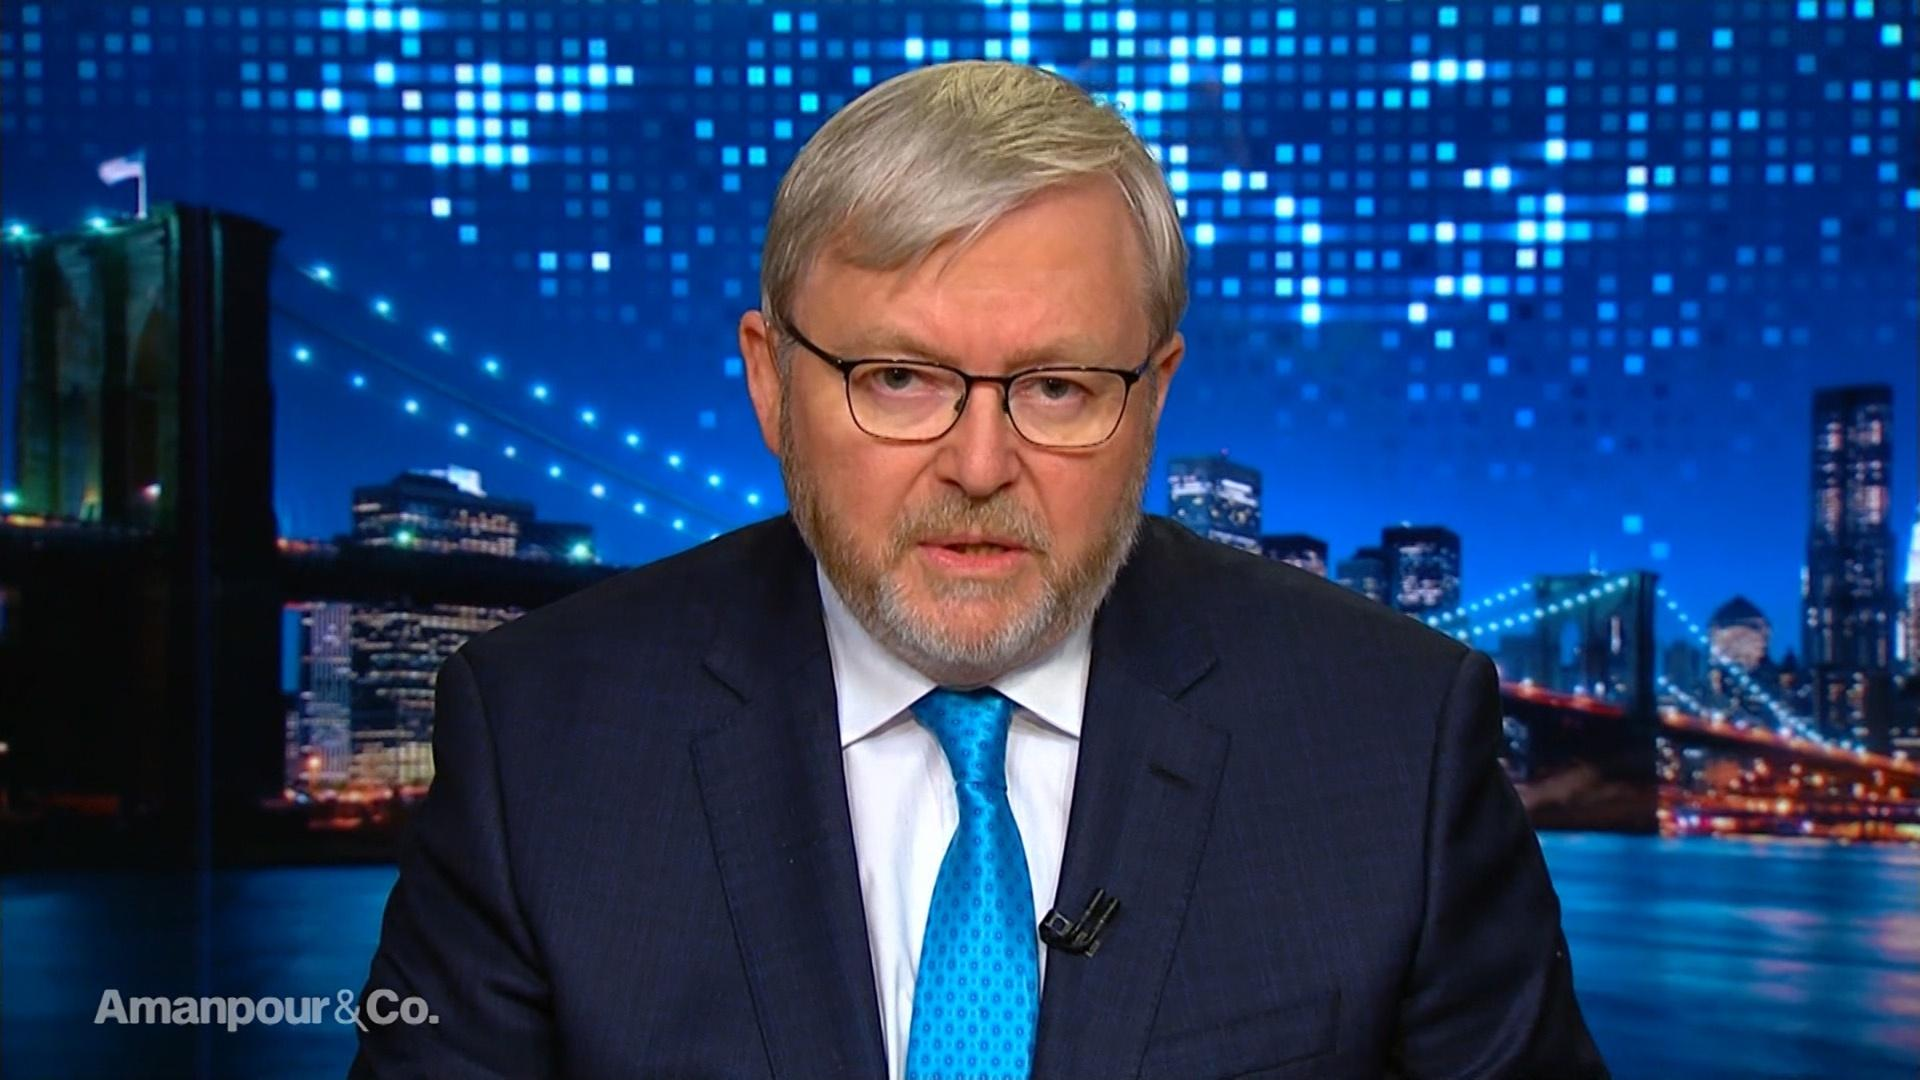 Amanpour And Company Former Australian Pm Kevin Rudd On New Zealand S Attacks Season 2019 Pbs